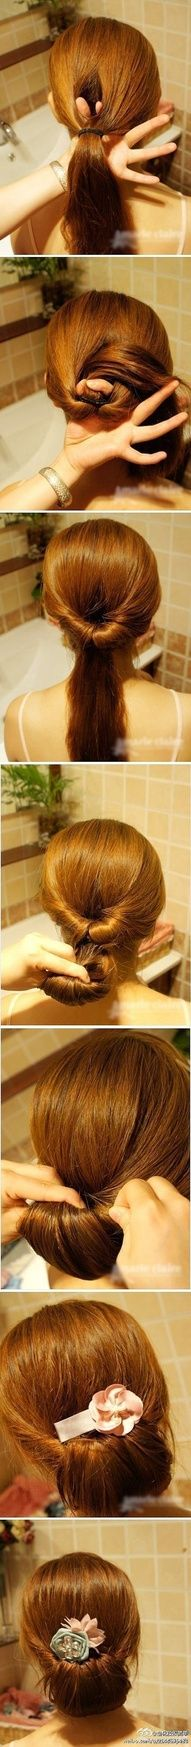 "easy updos"" data-componentType=""MODAL_PIN"